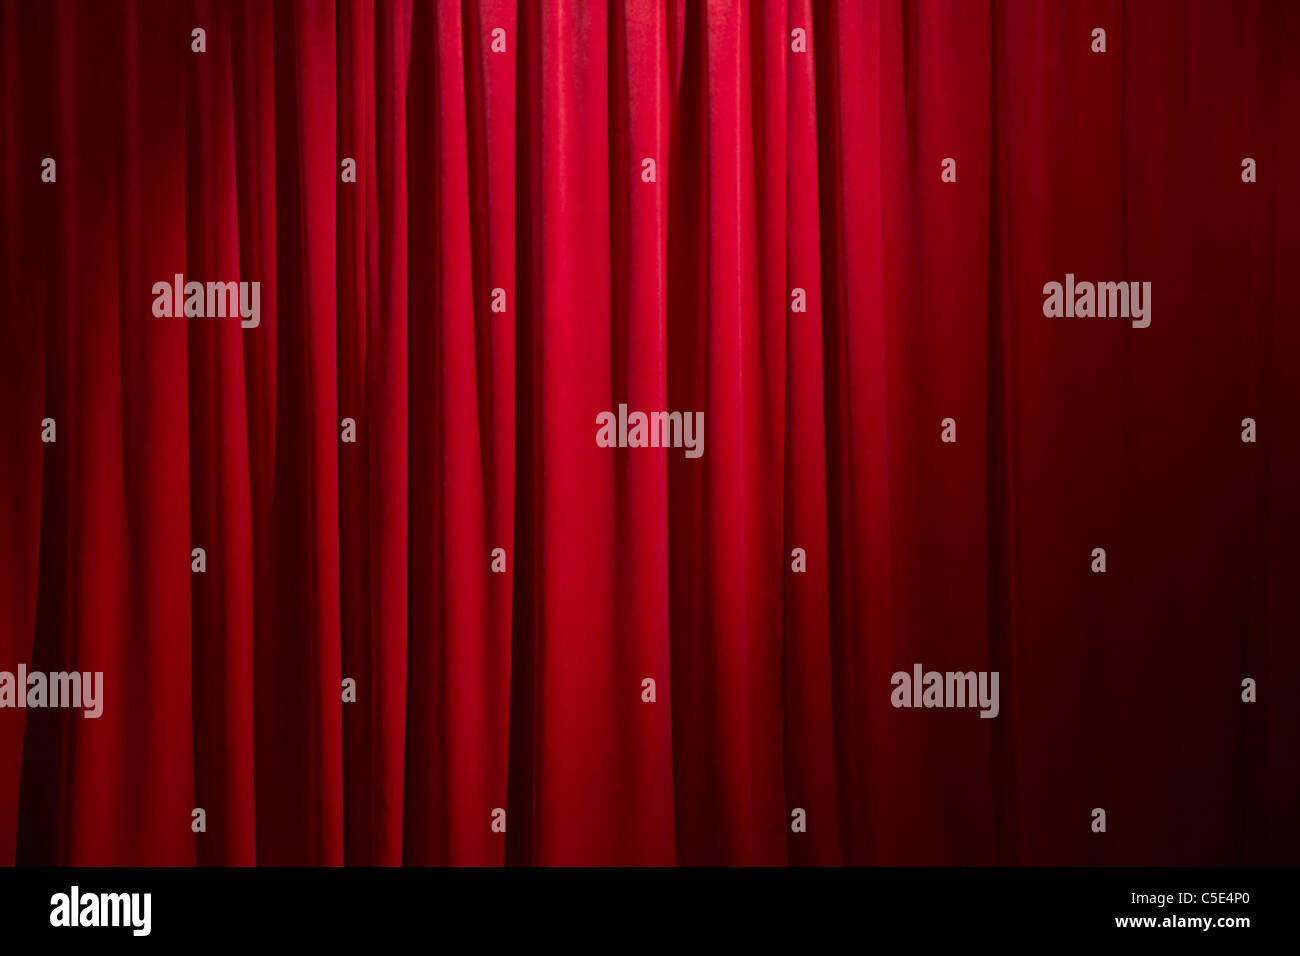 Background of a red curtain - Stock Image